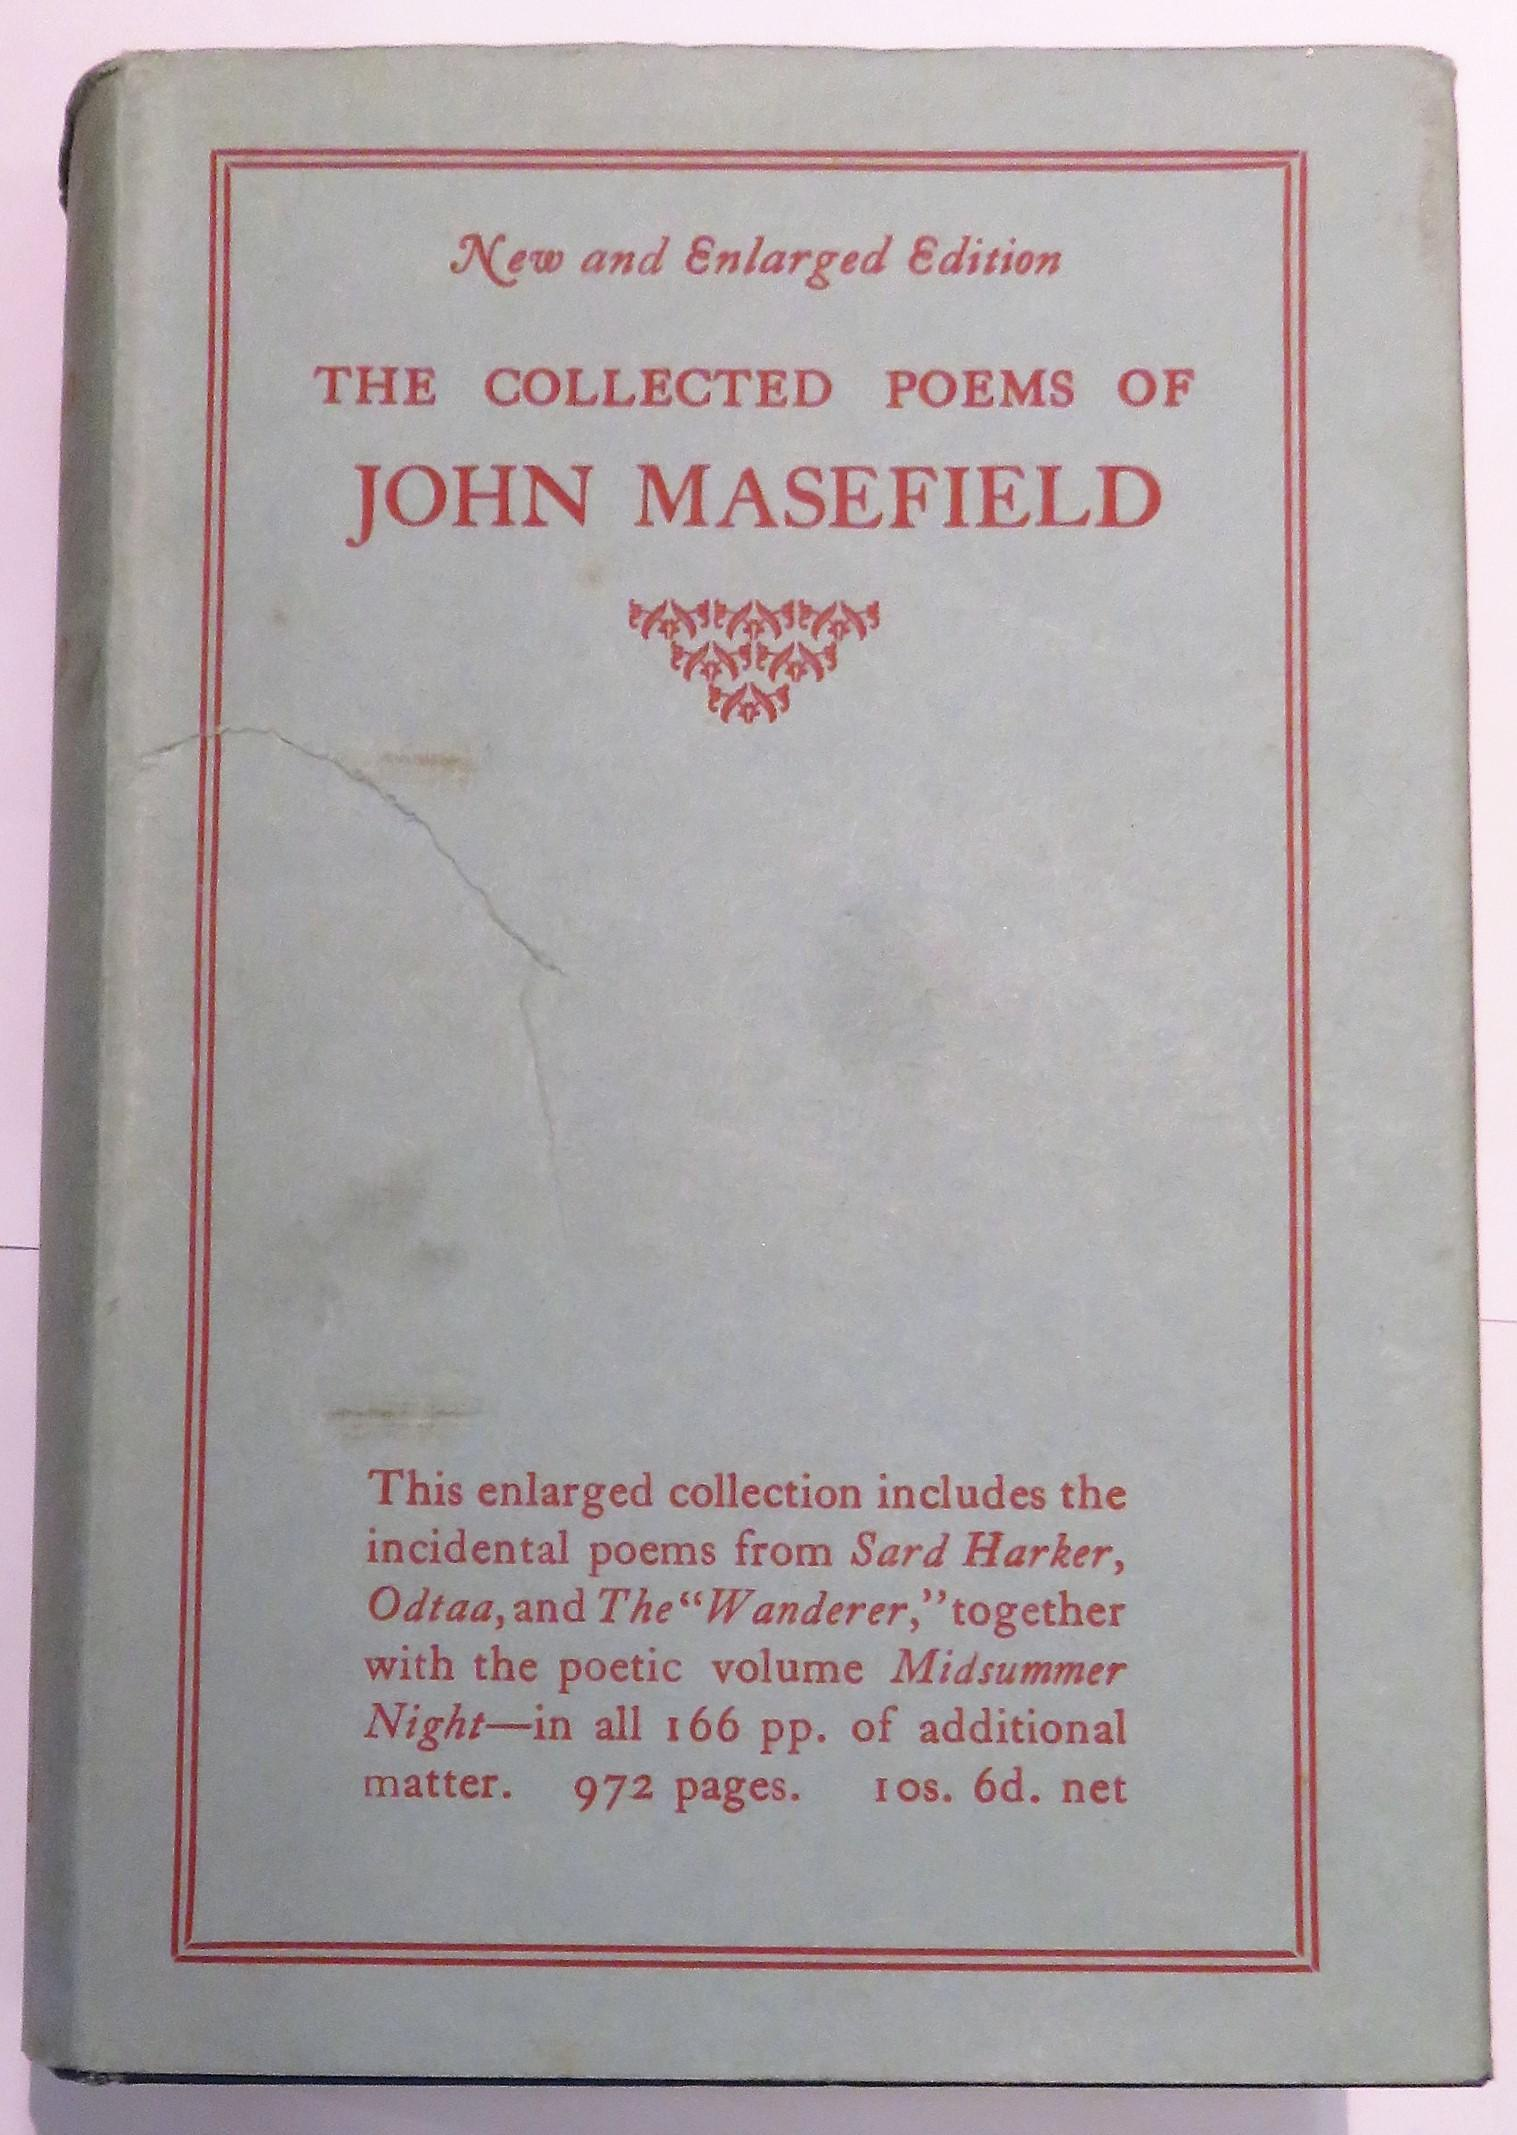 The Collected Poems of John Masefield